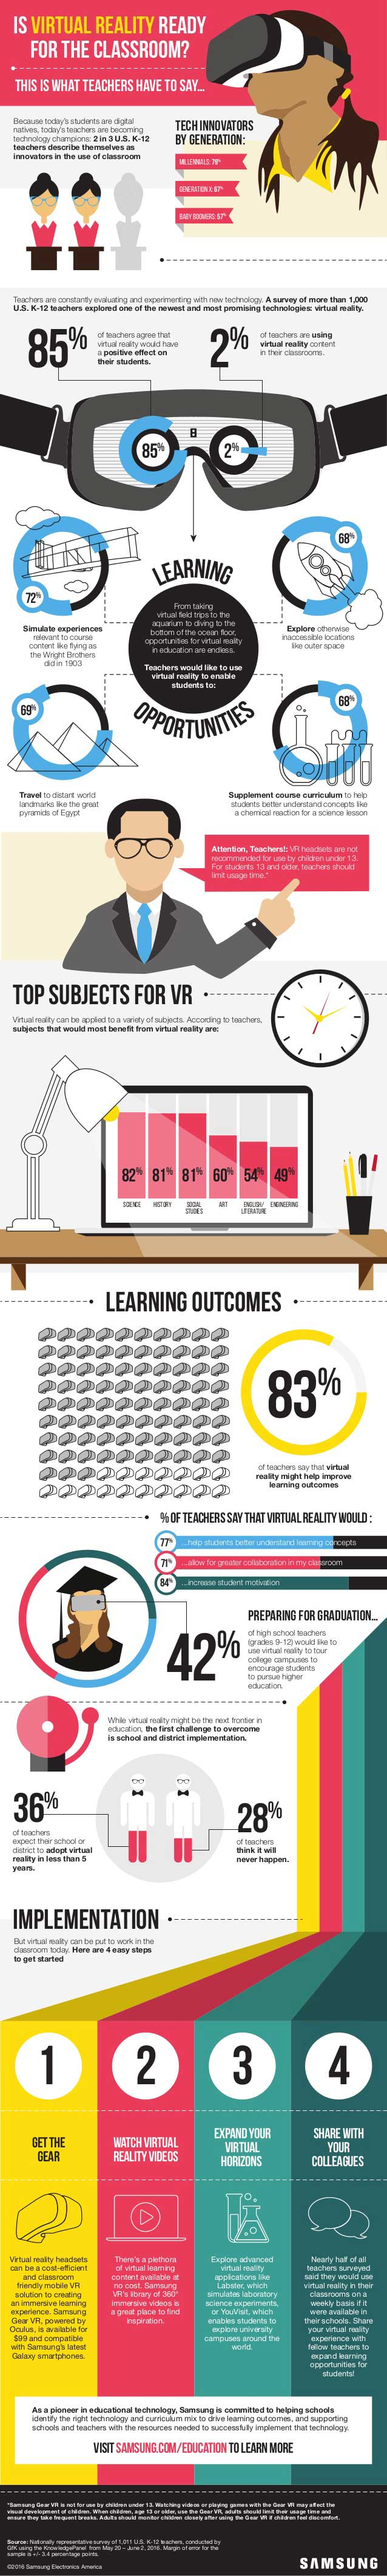 using-virtual-reality-in-the-classroom-what-teachers-think-infographic.jpg